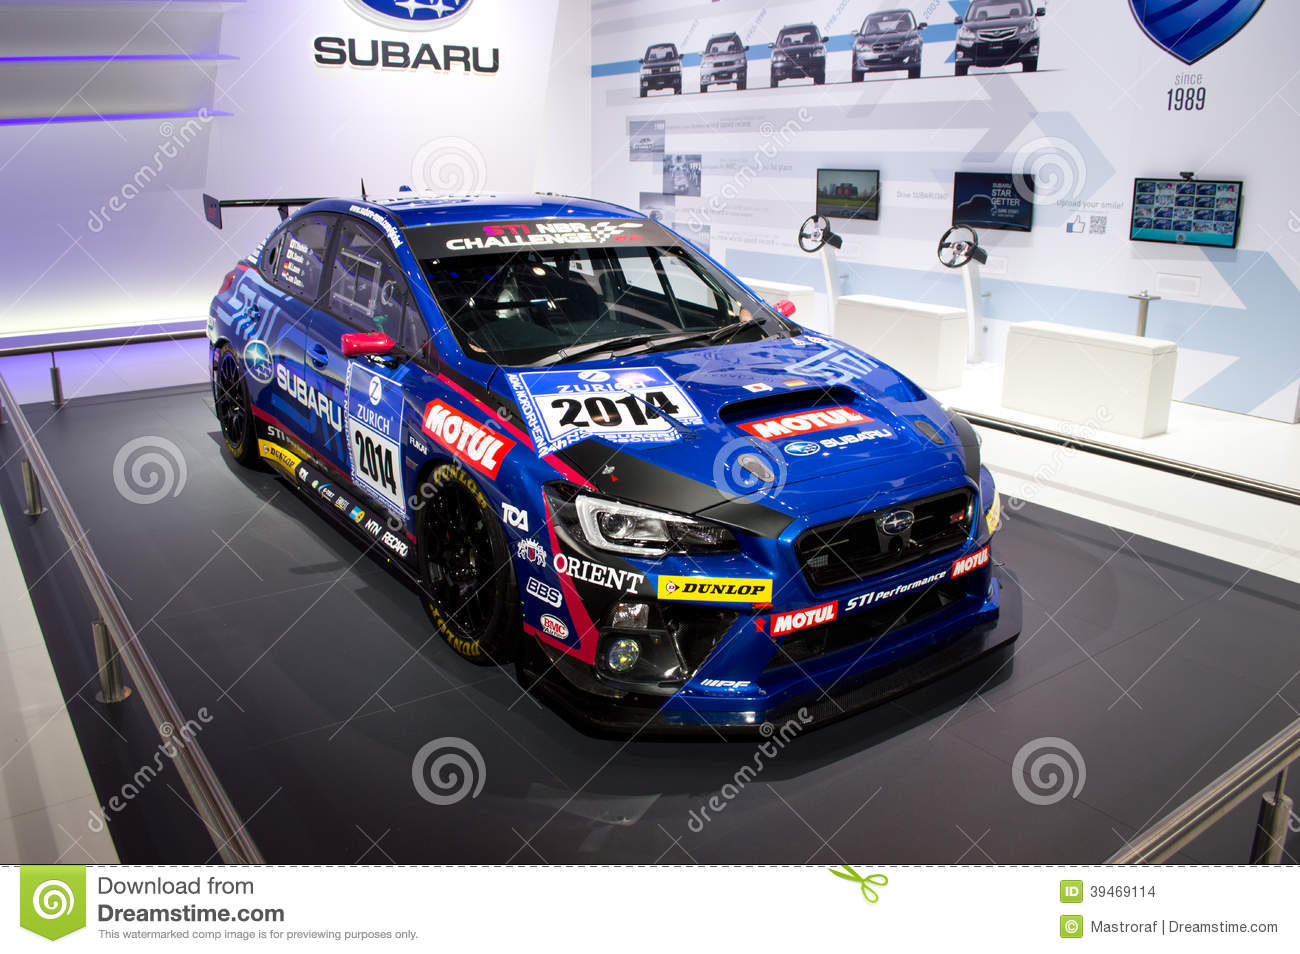 subaru wrx race car geneva 2014 editorial stock image - image of